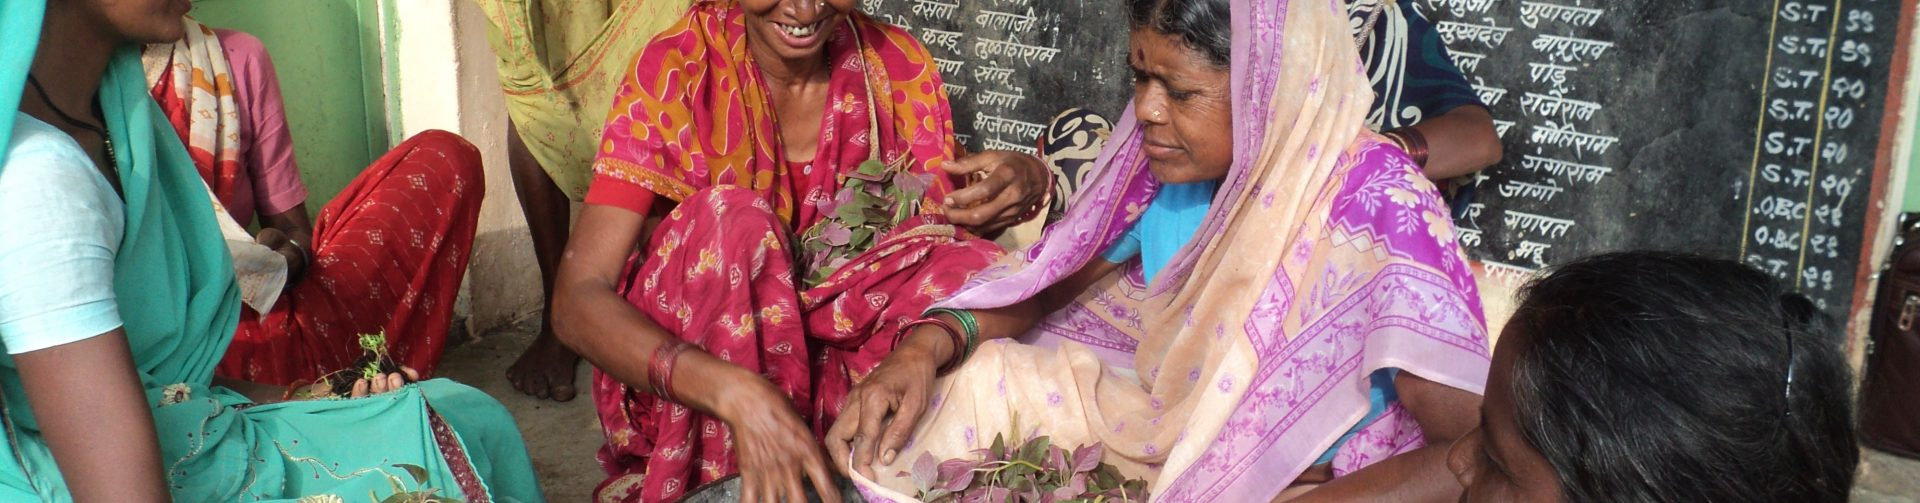 LANSA Receives A+ Rating in Program Review for Contributions to Nutrition Research in South Asia